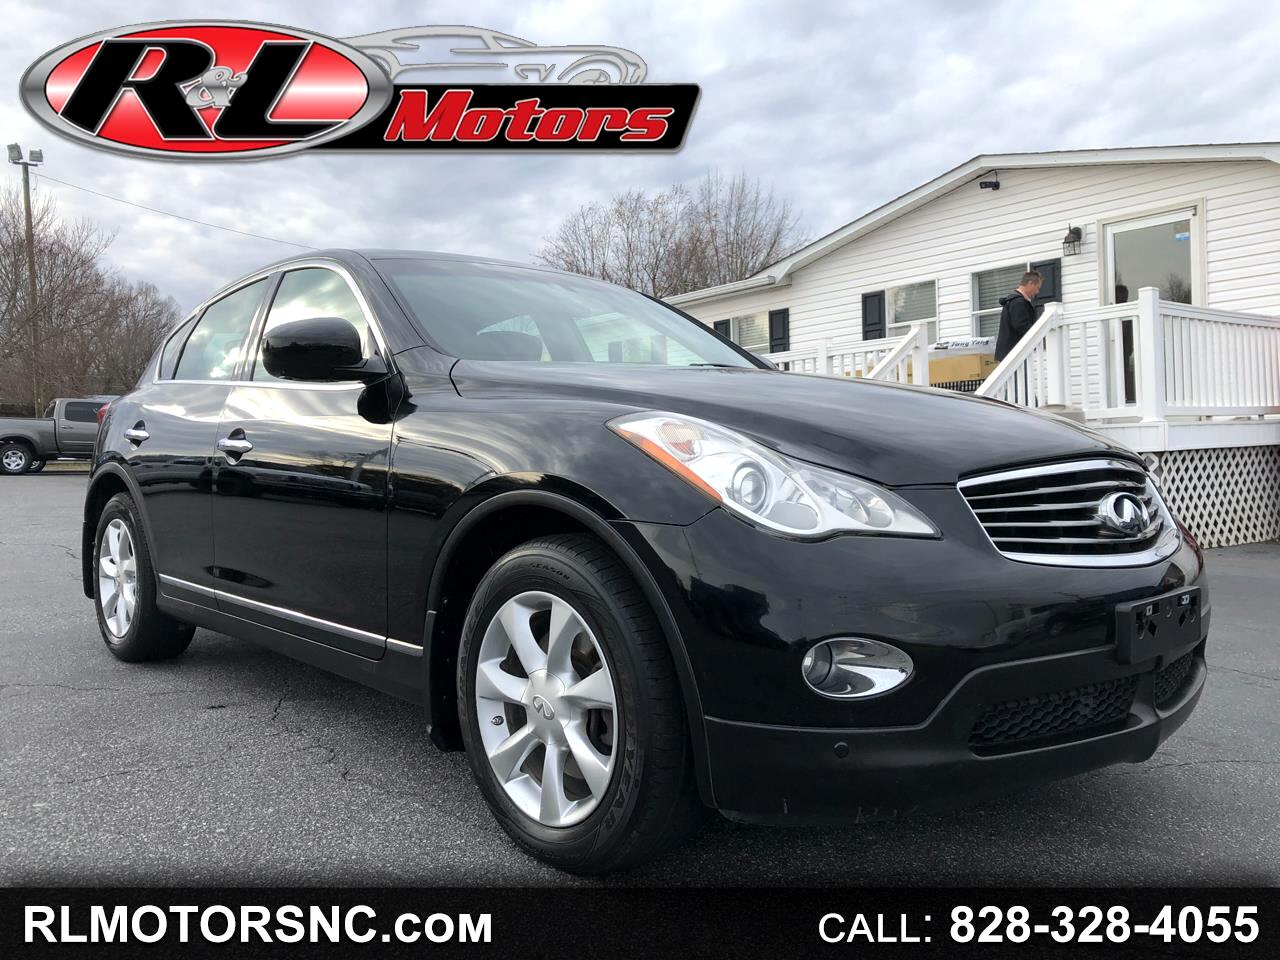 2010 Infiniti EX EX35 Journey AWD